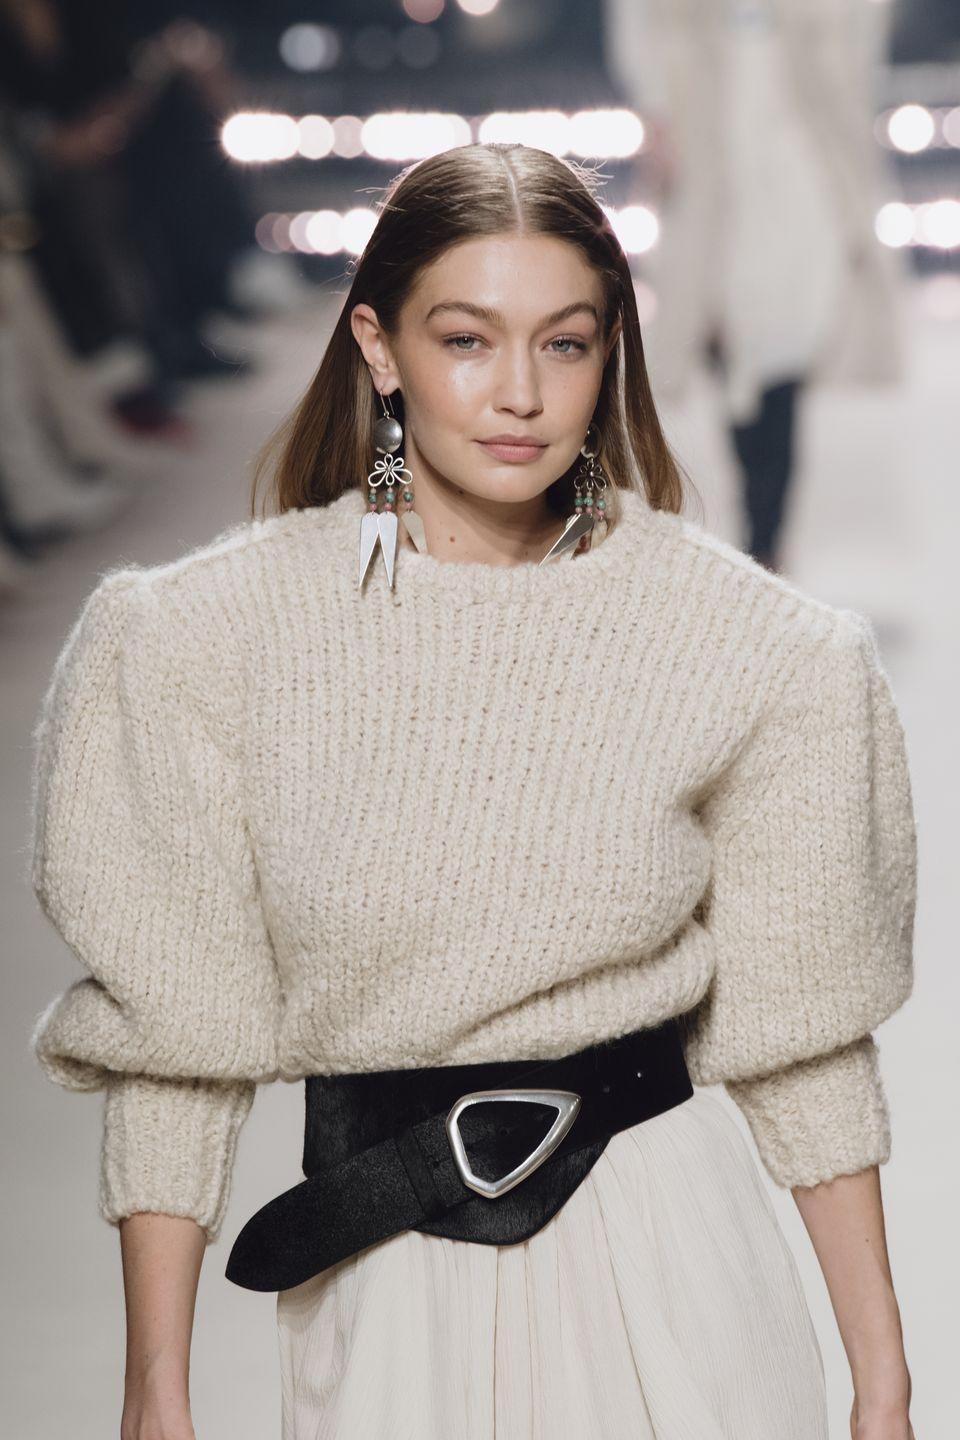 <p>This season, high-shine cheekbones are taking a backseat to fresh-faced radiance. At Isabel Marant, models appeared naturally dewy–like they just applied at 10-step skincare routine.</p>